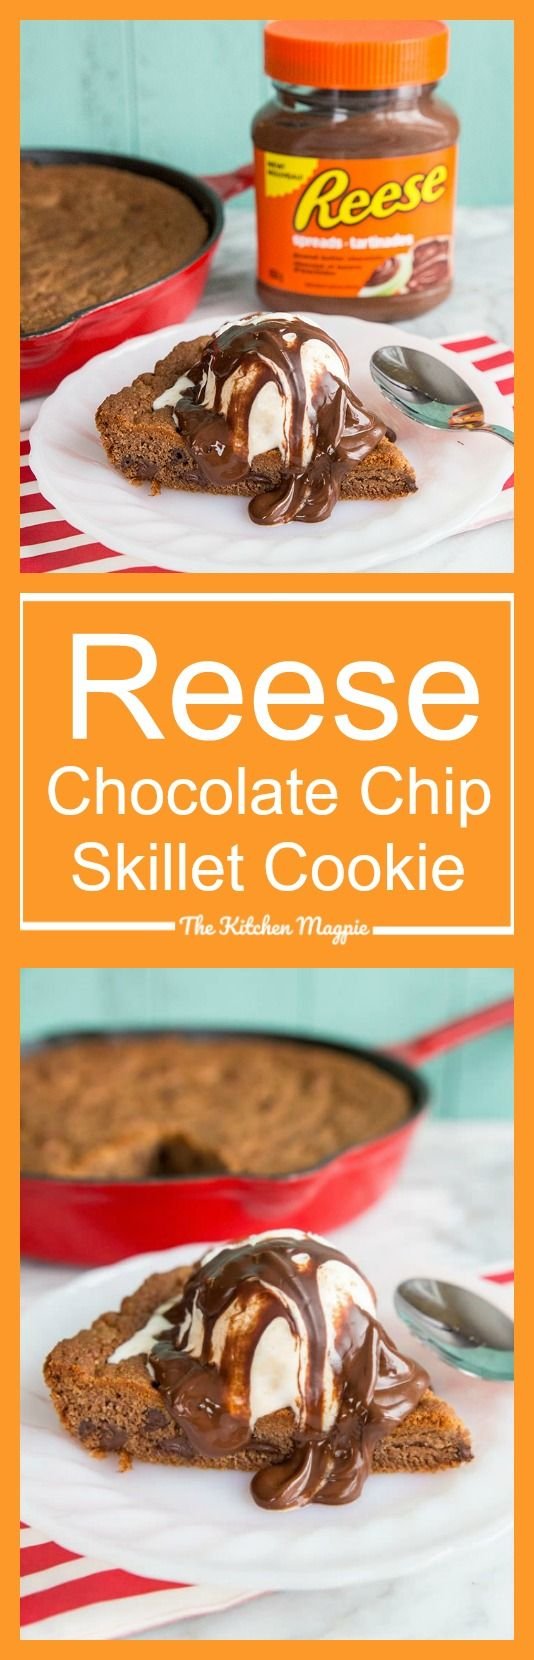 Reese Chocolate Chip Skillet Cookie